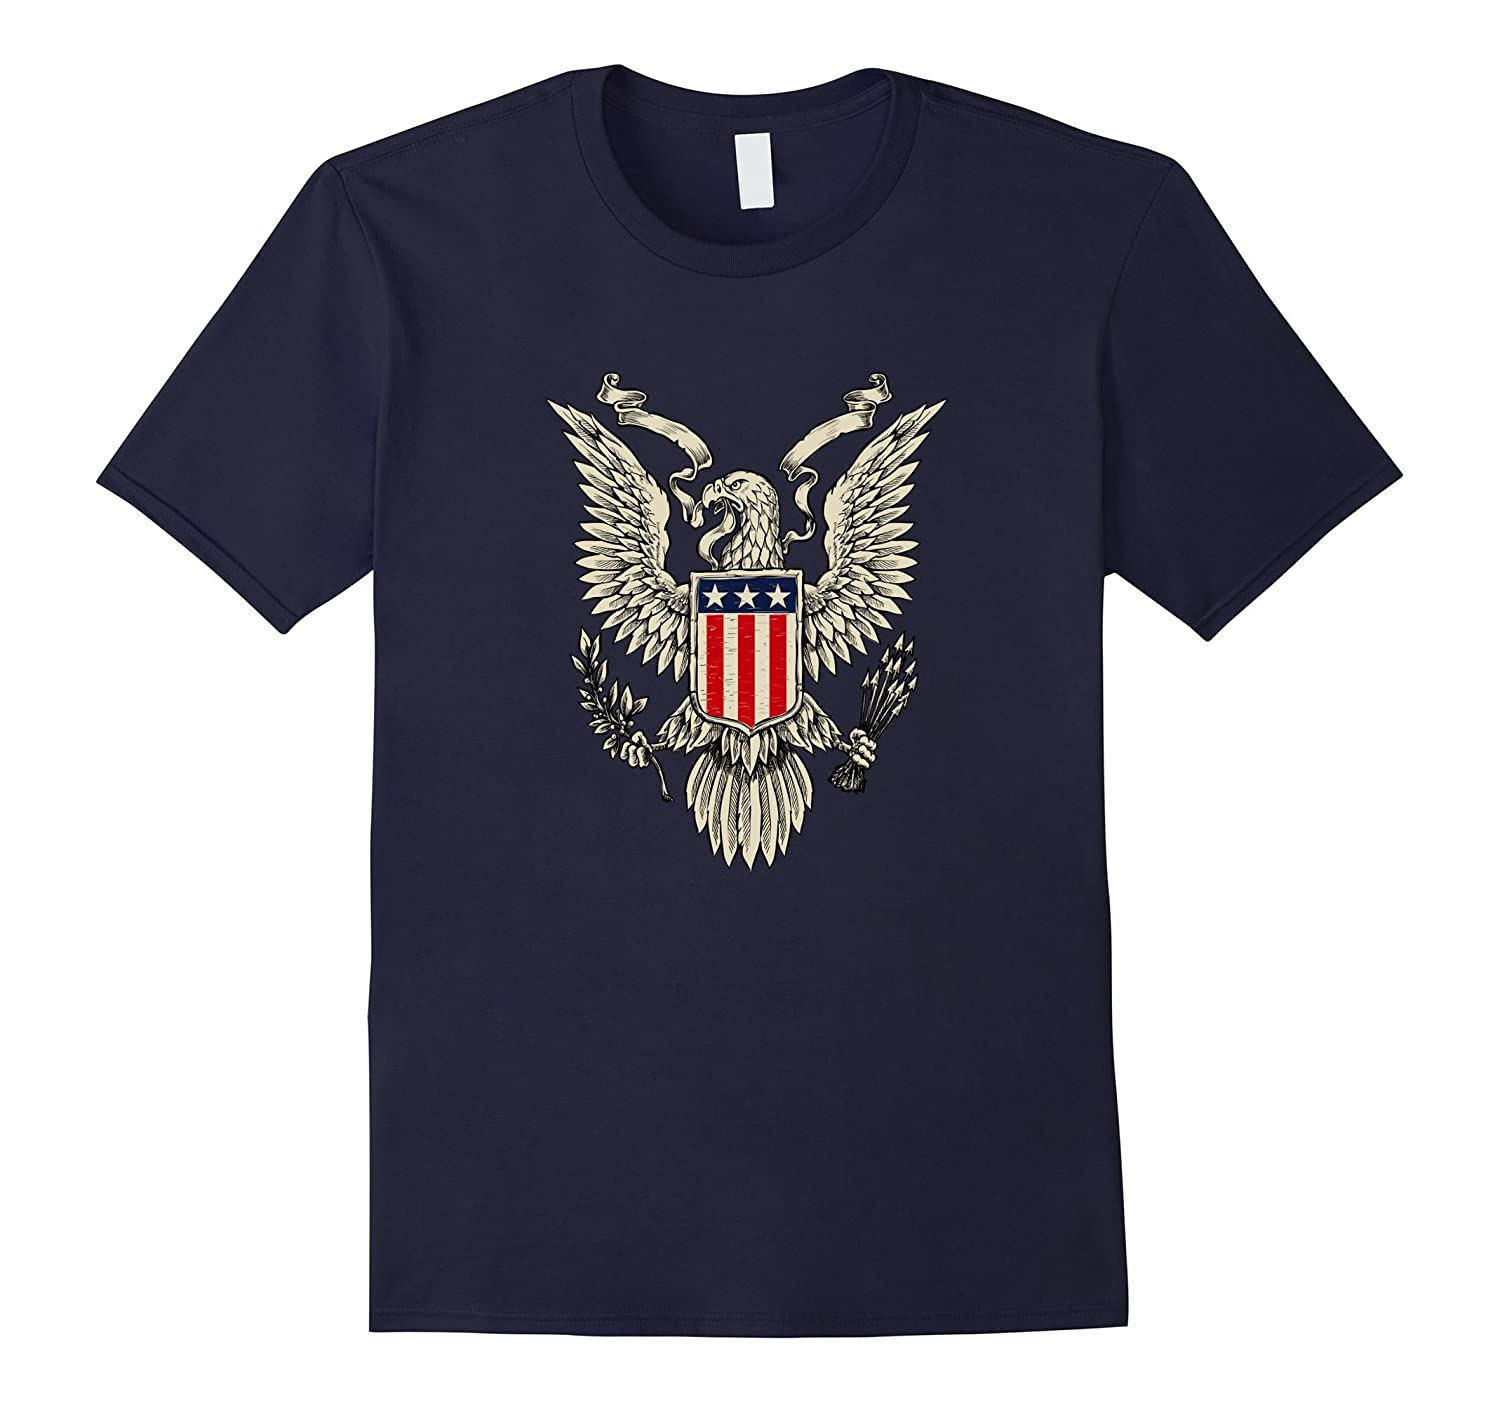 American Patriotic T Shirt With Eagle, For National Holidays-TH